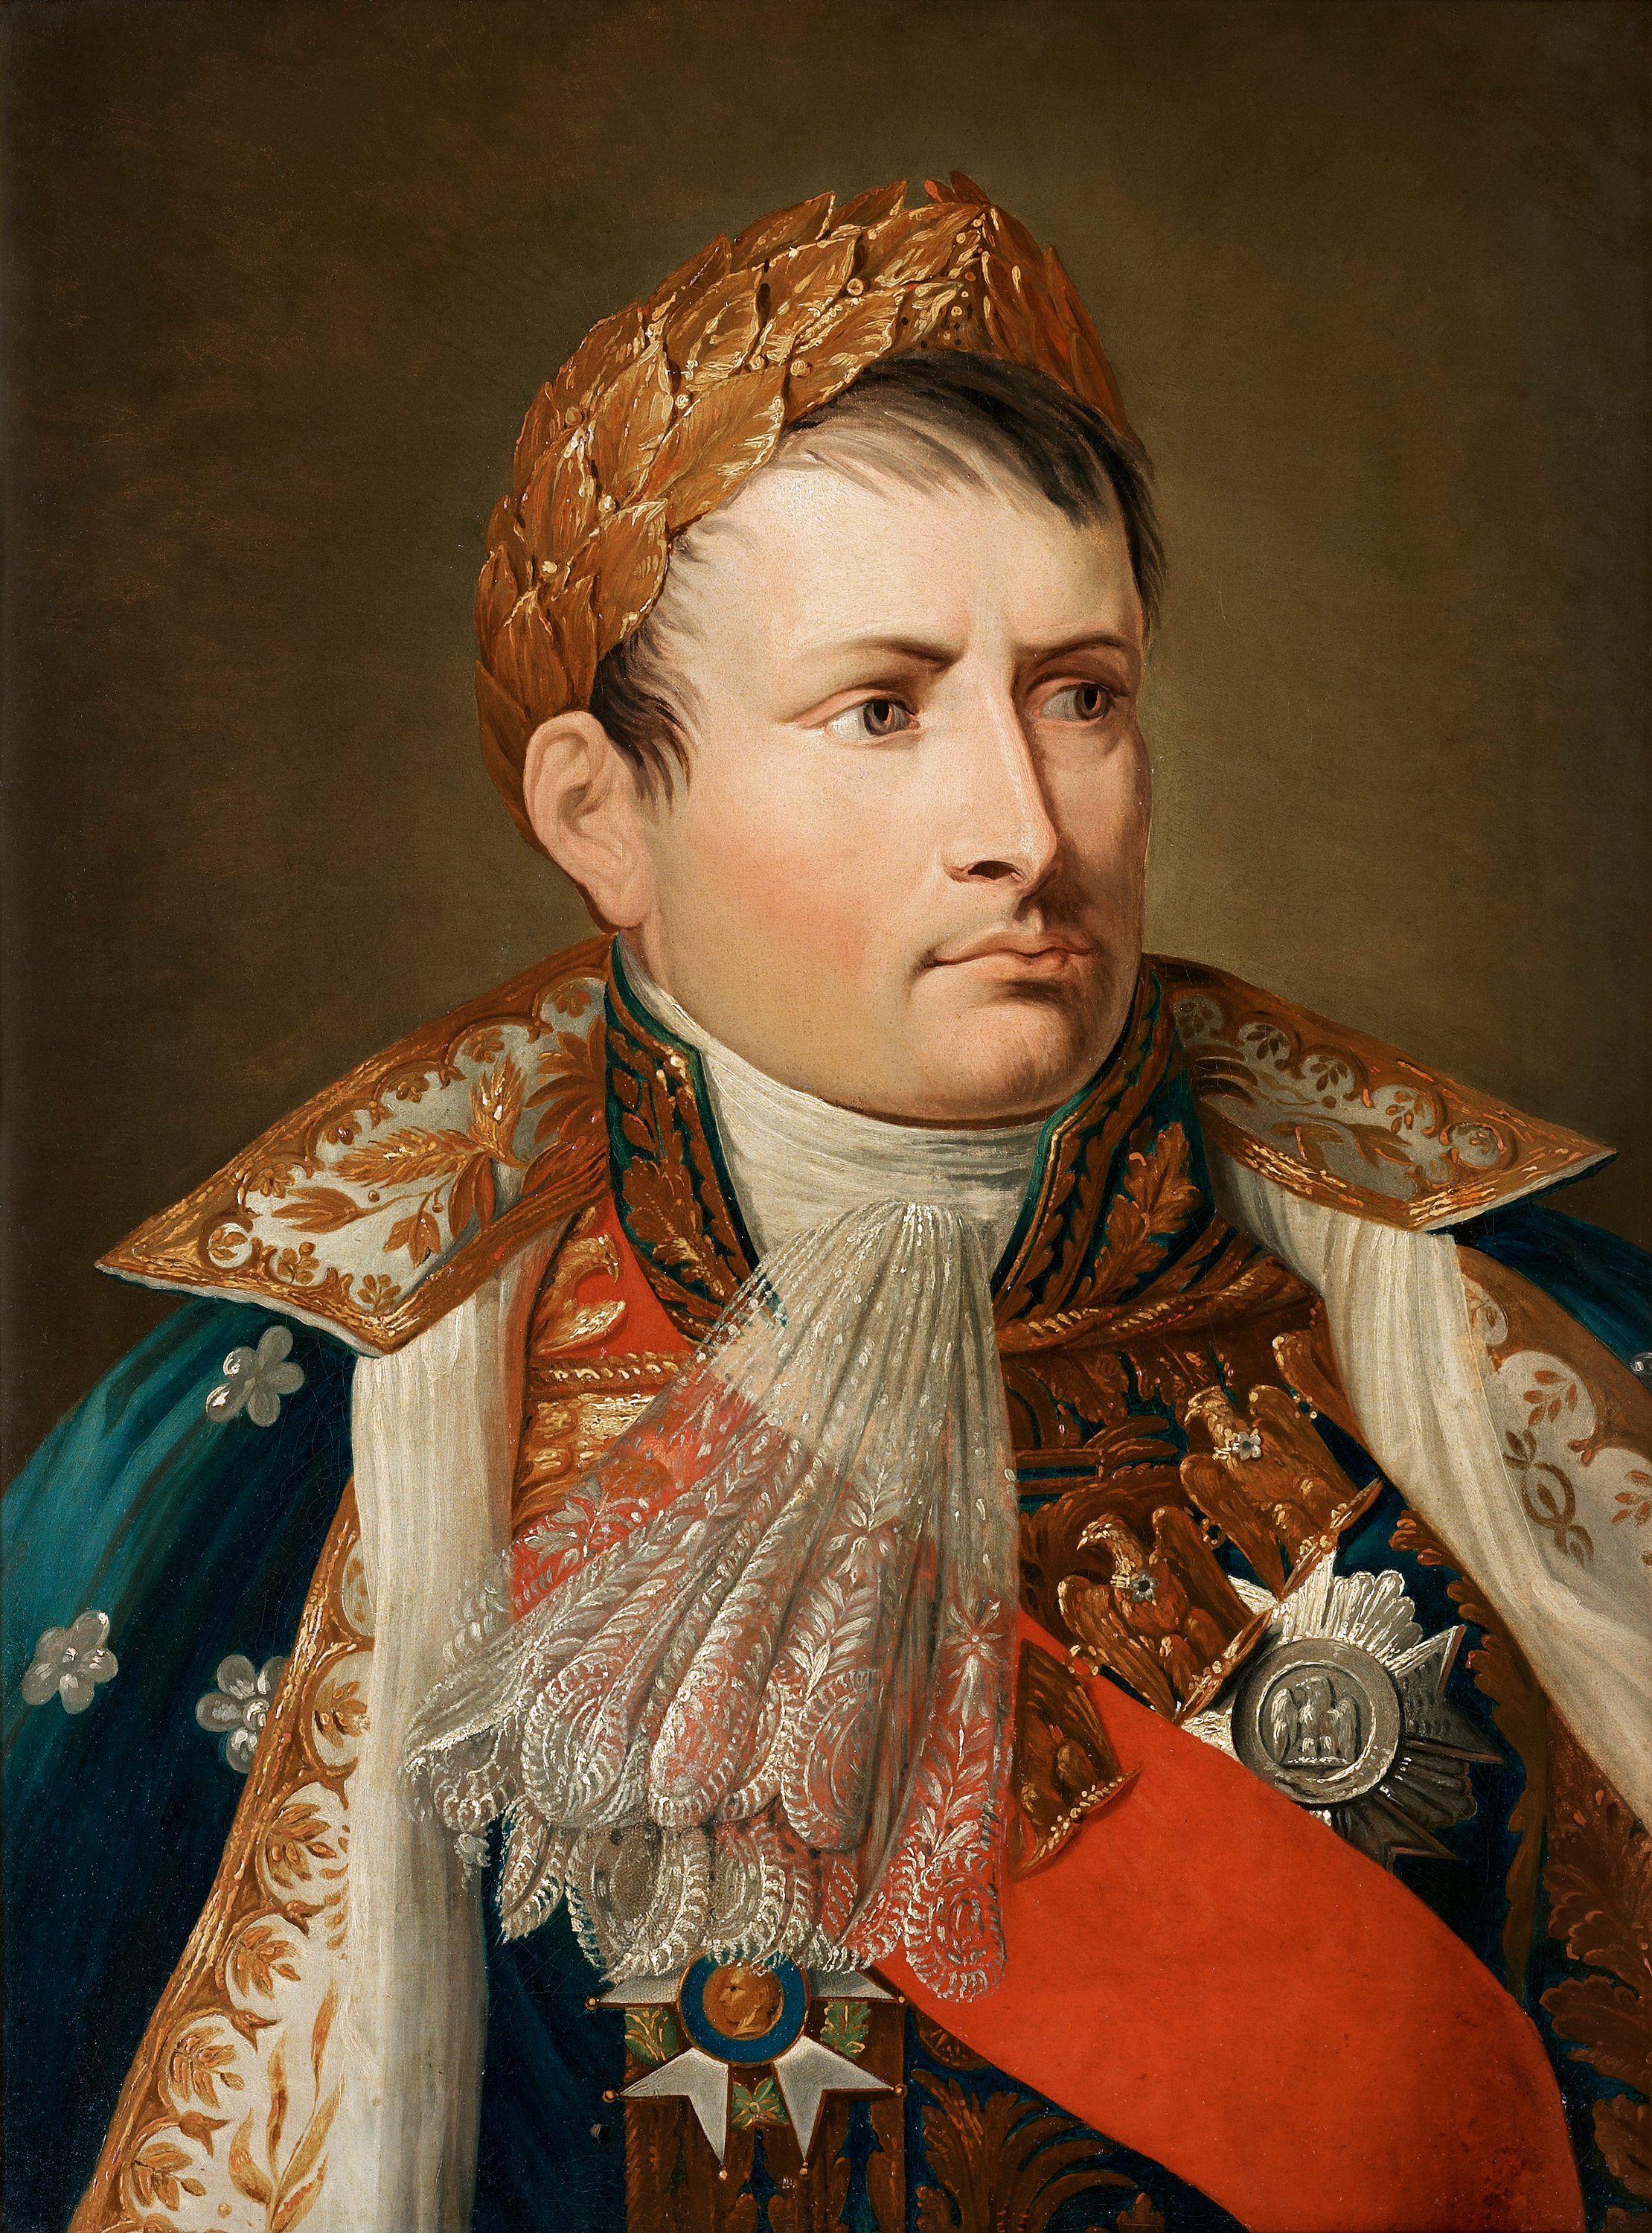 napoleon bonaparte Kids learn about the biography of napoleon bonaparte, the first emperor of  france who conquered much of europe before being defeated and sent into exile.